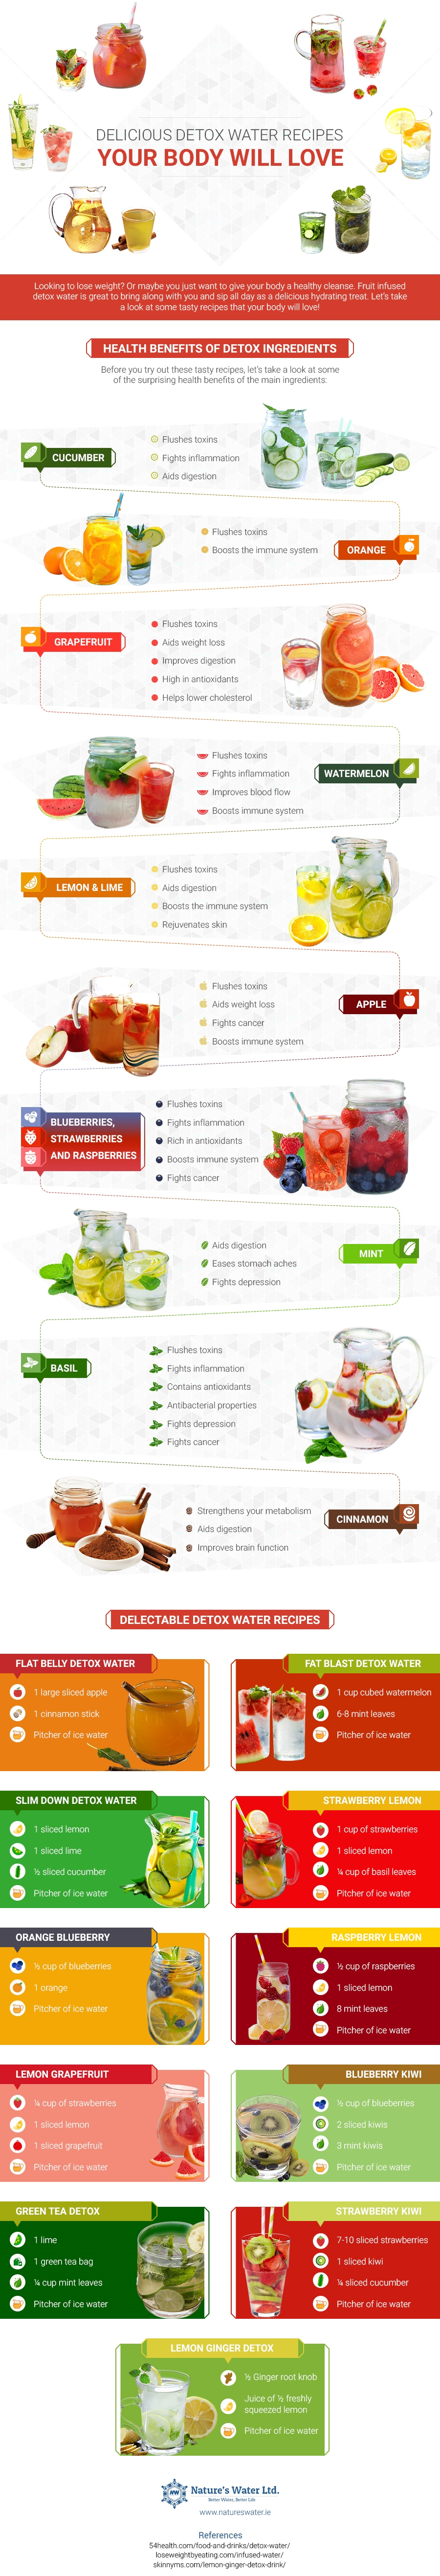 detox water recipes #weightlossbeforeandafter